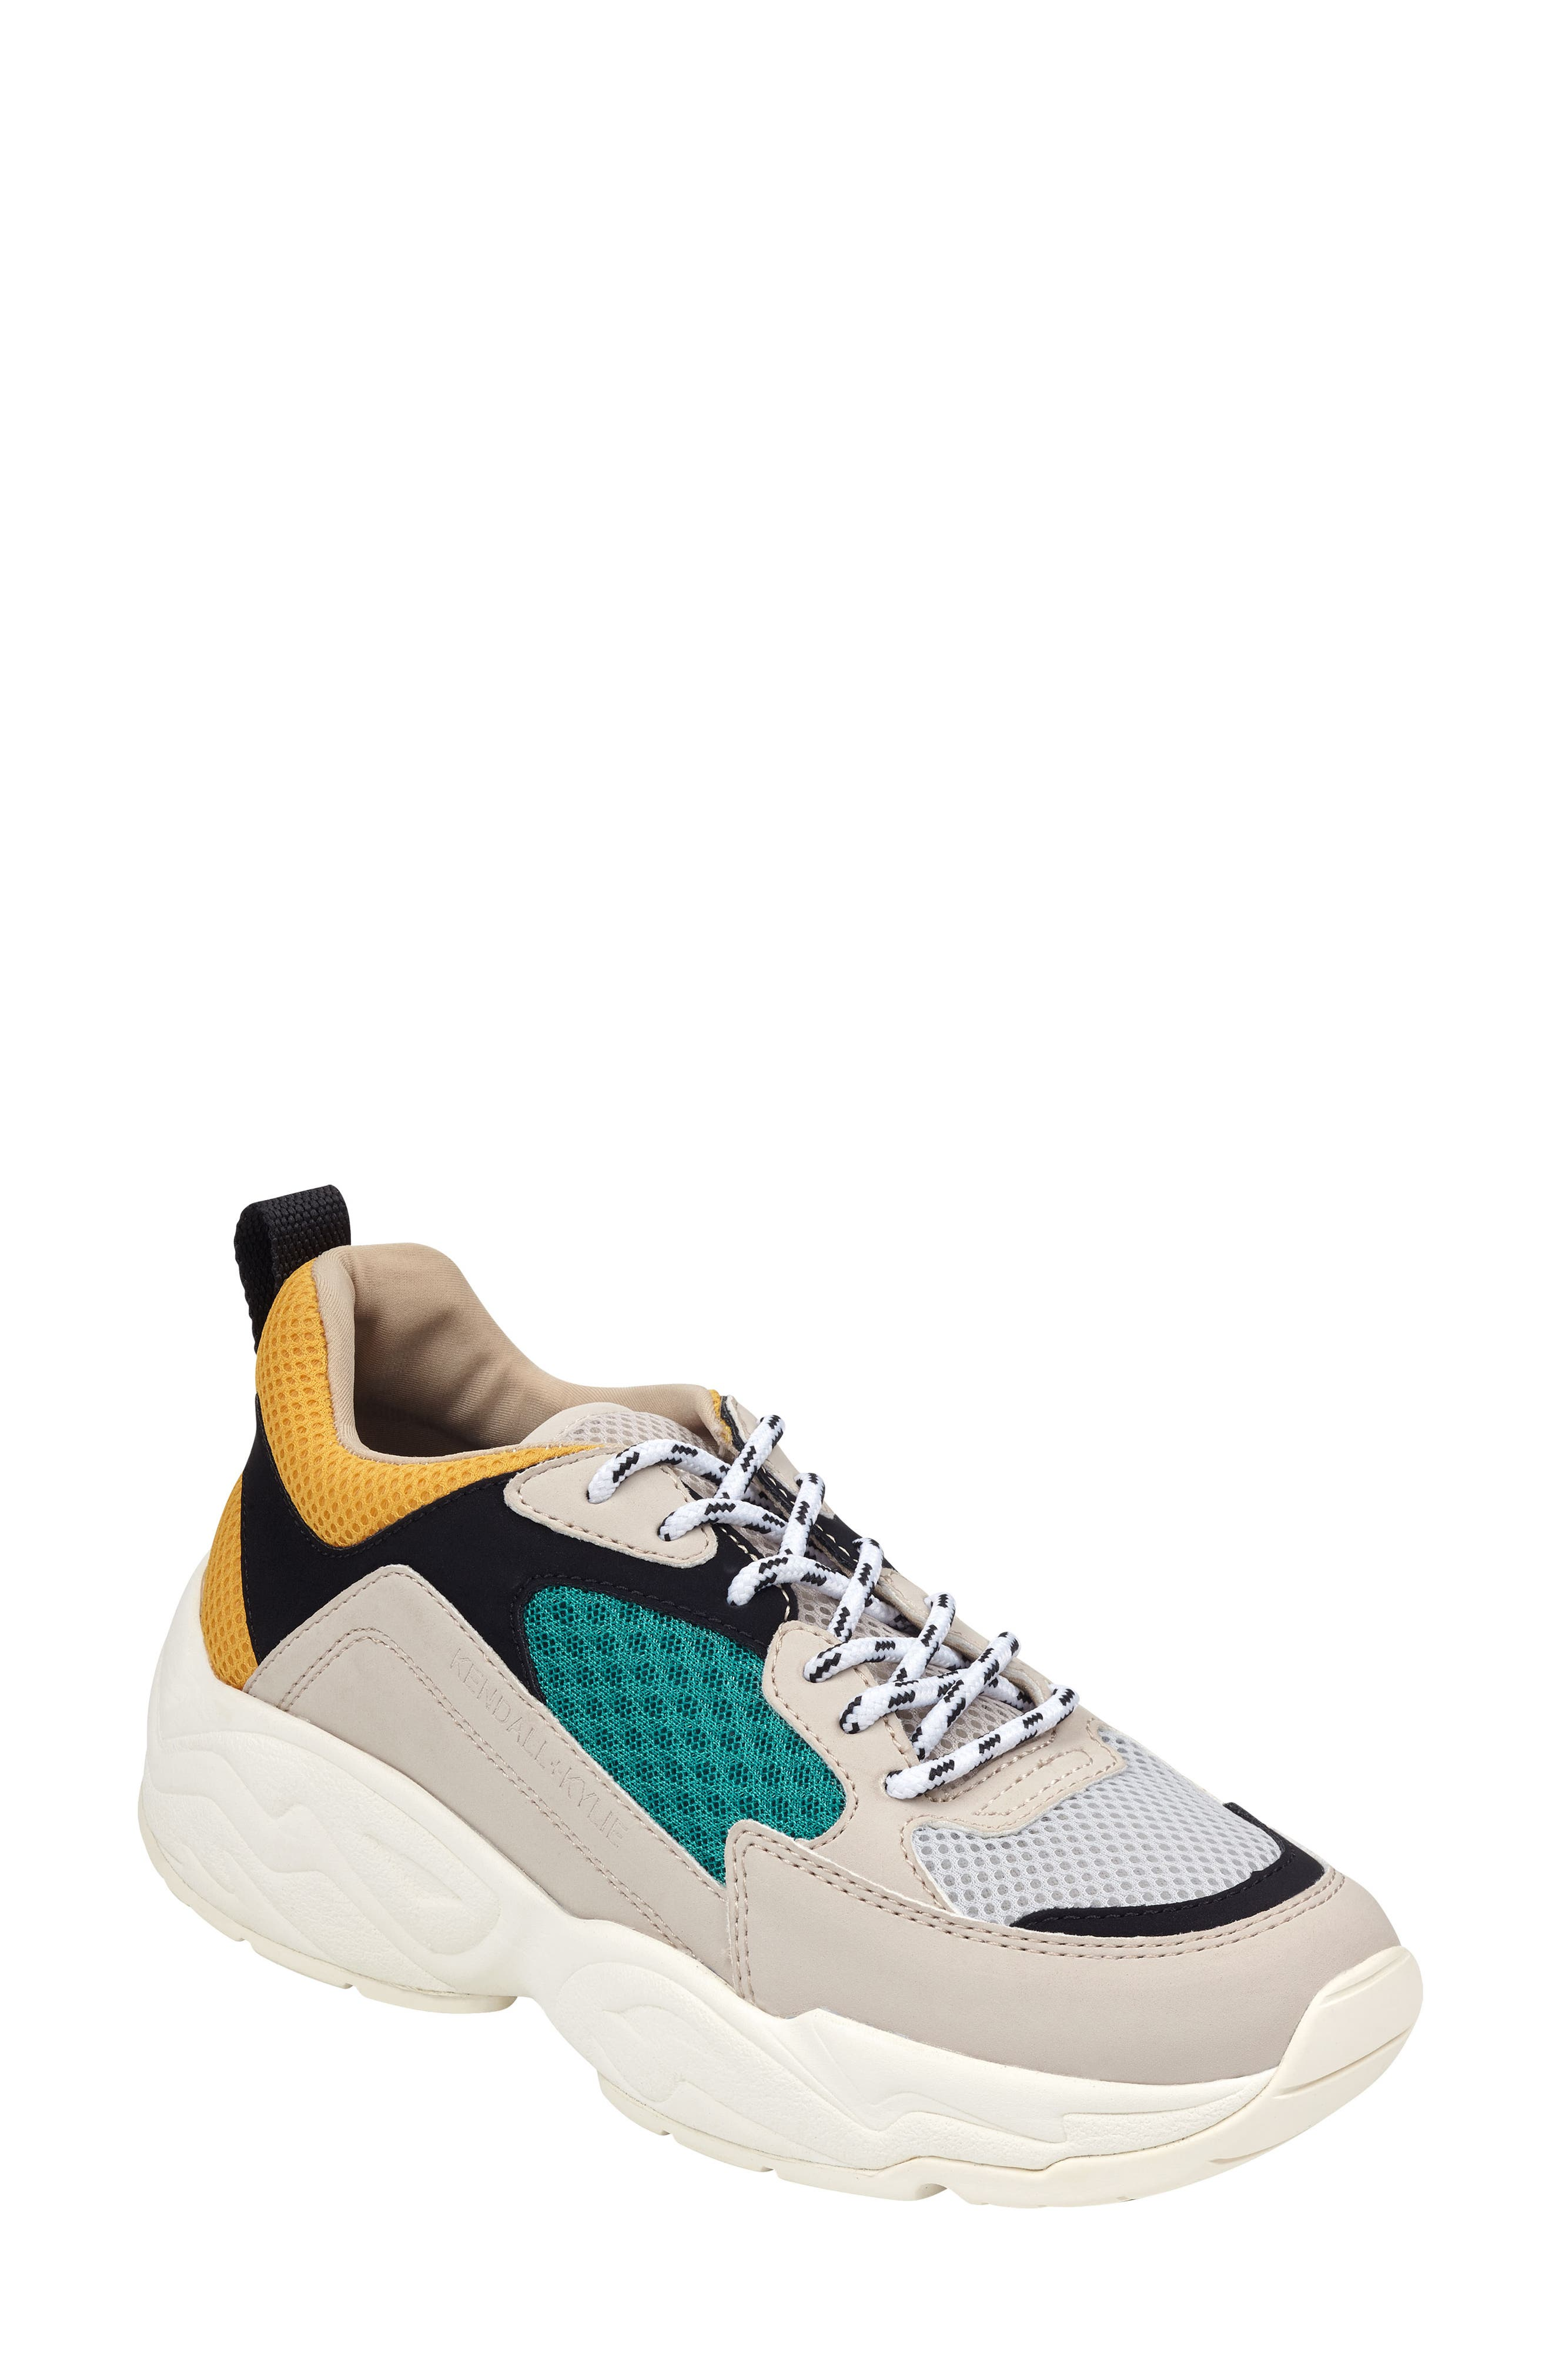 KENDALL + KYLIE,                             Dad Sneaker,                             Main thumbnail 1, color,                             250